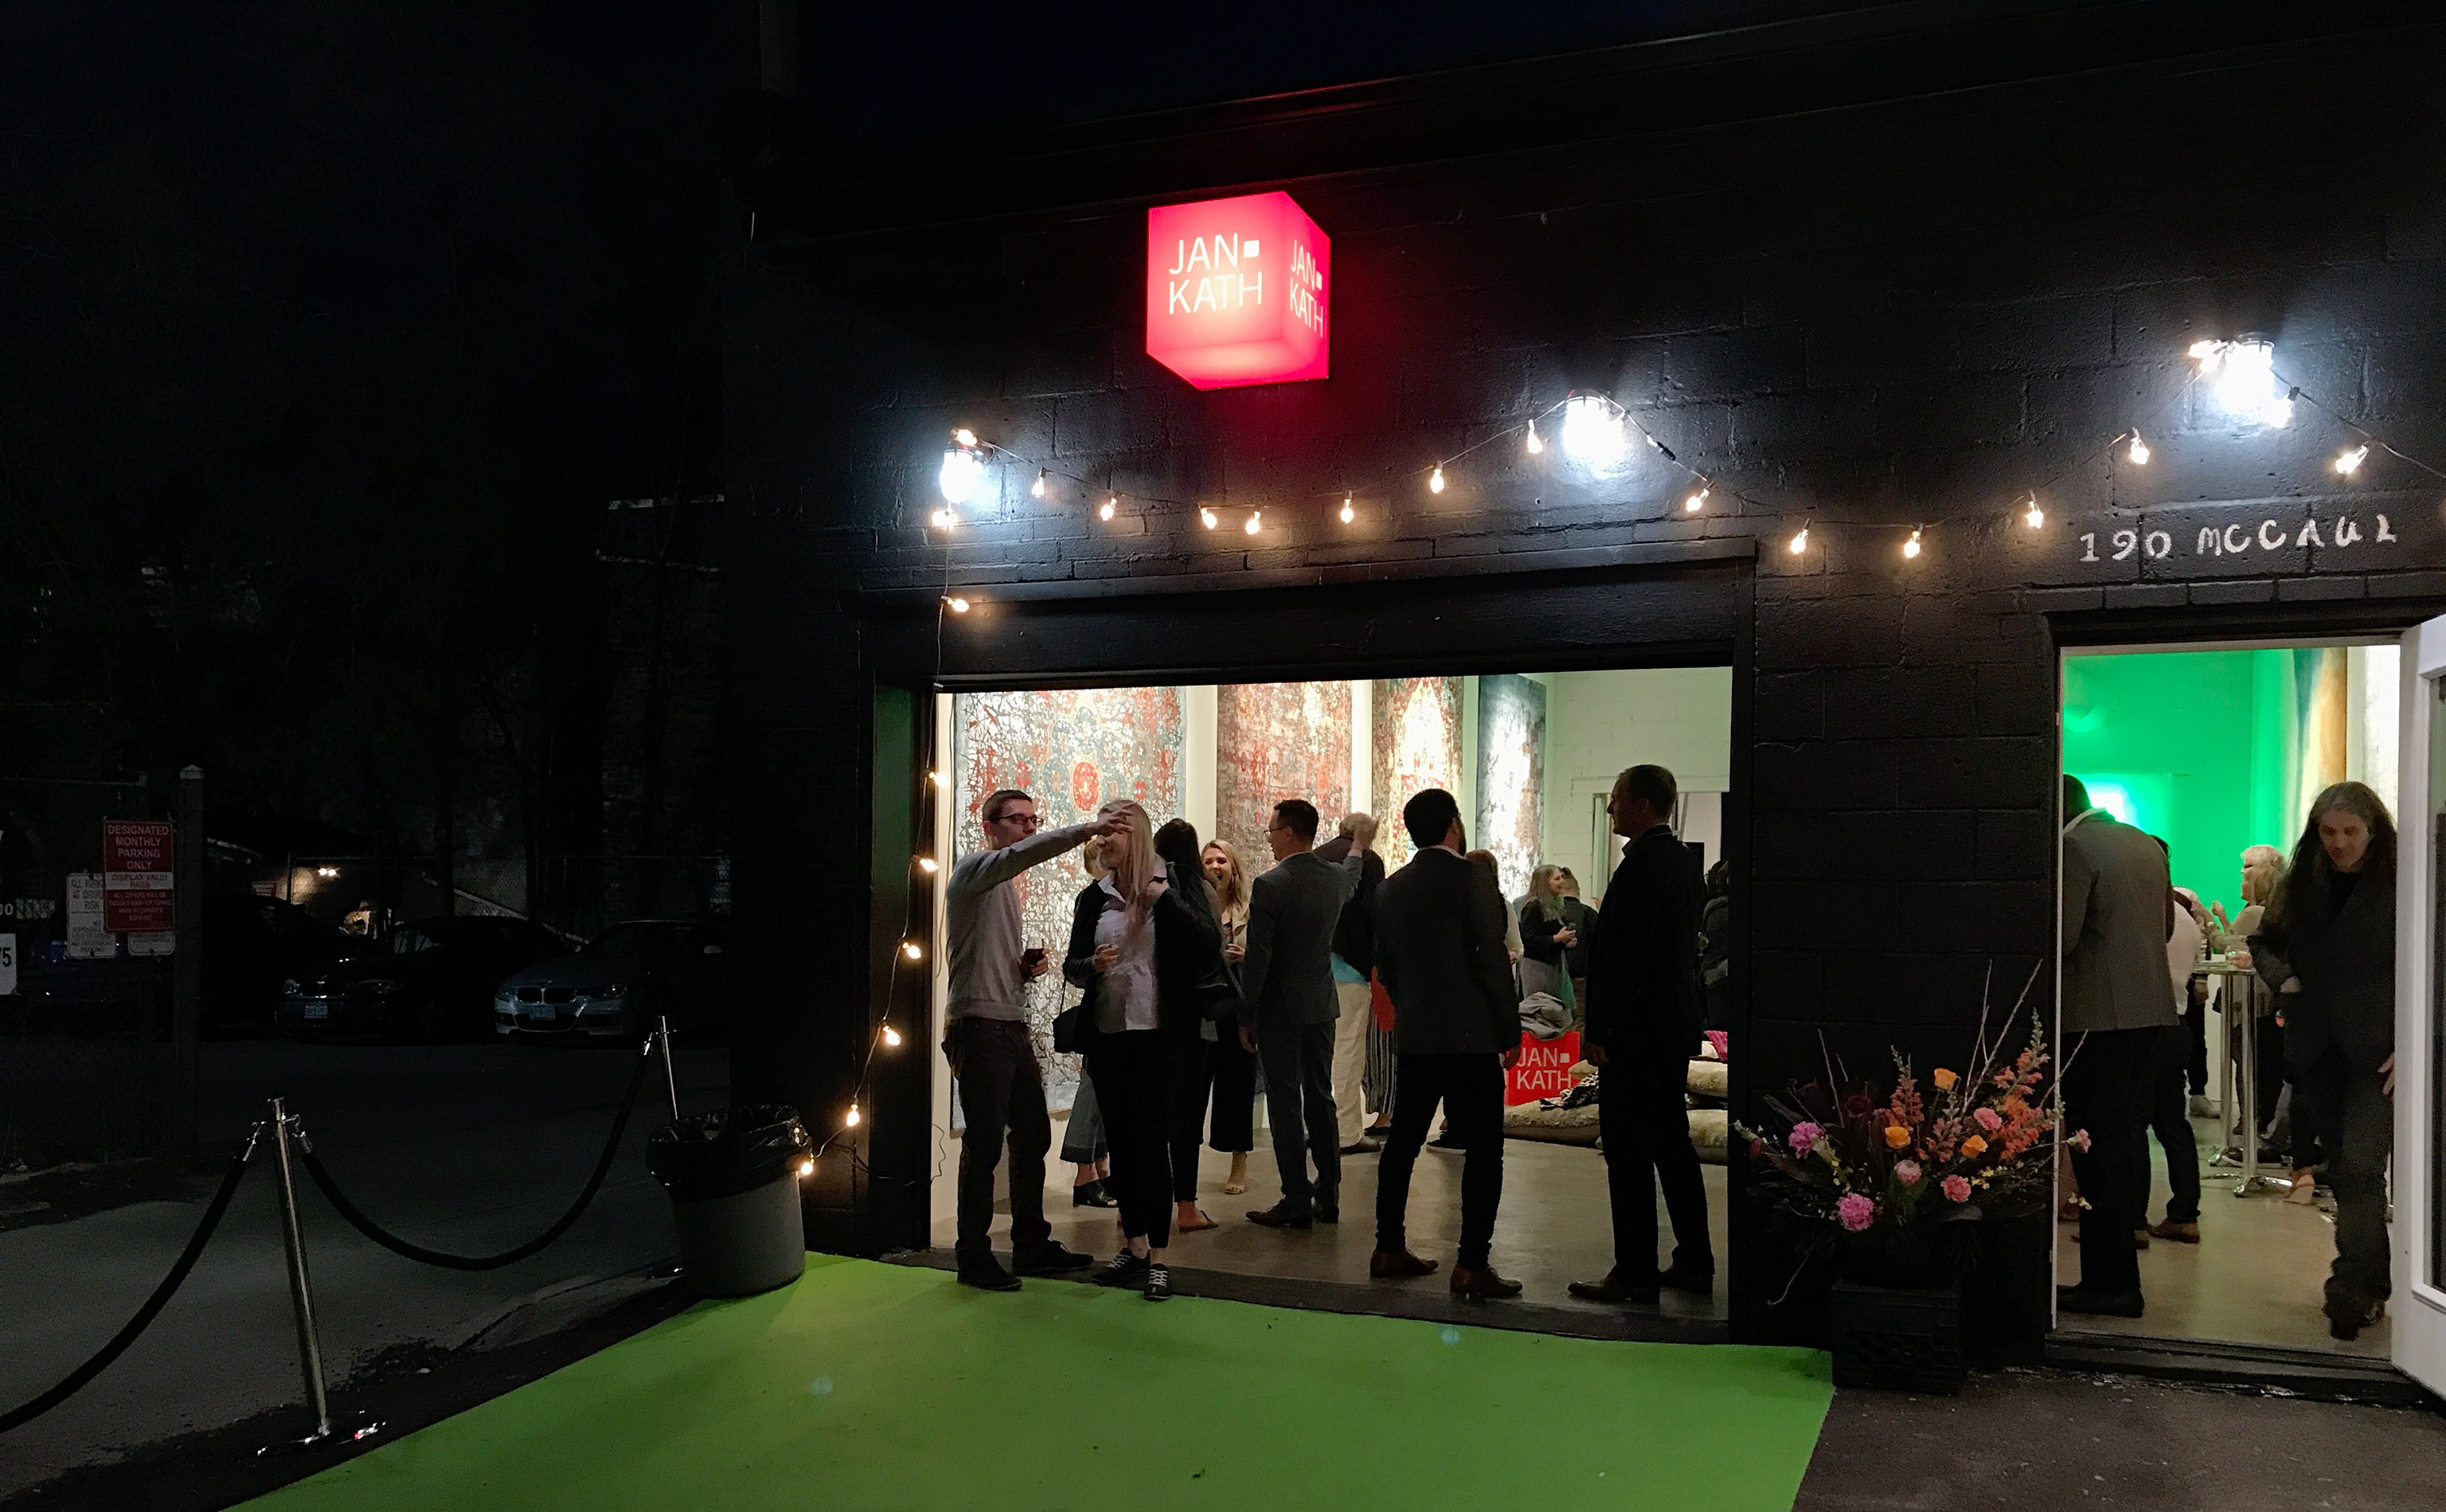 The crowd mingled into the night of Thursday, 10 May 2018 as Jan Kath opened it's latest showroom, it's tenth (Is it?), in Toronto, Ontario, Canada. | Image by The Ruggist.